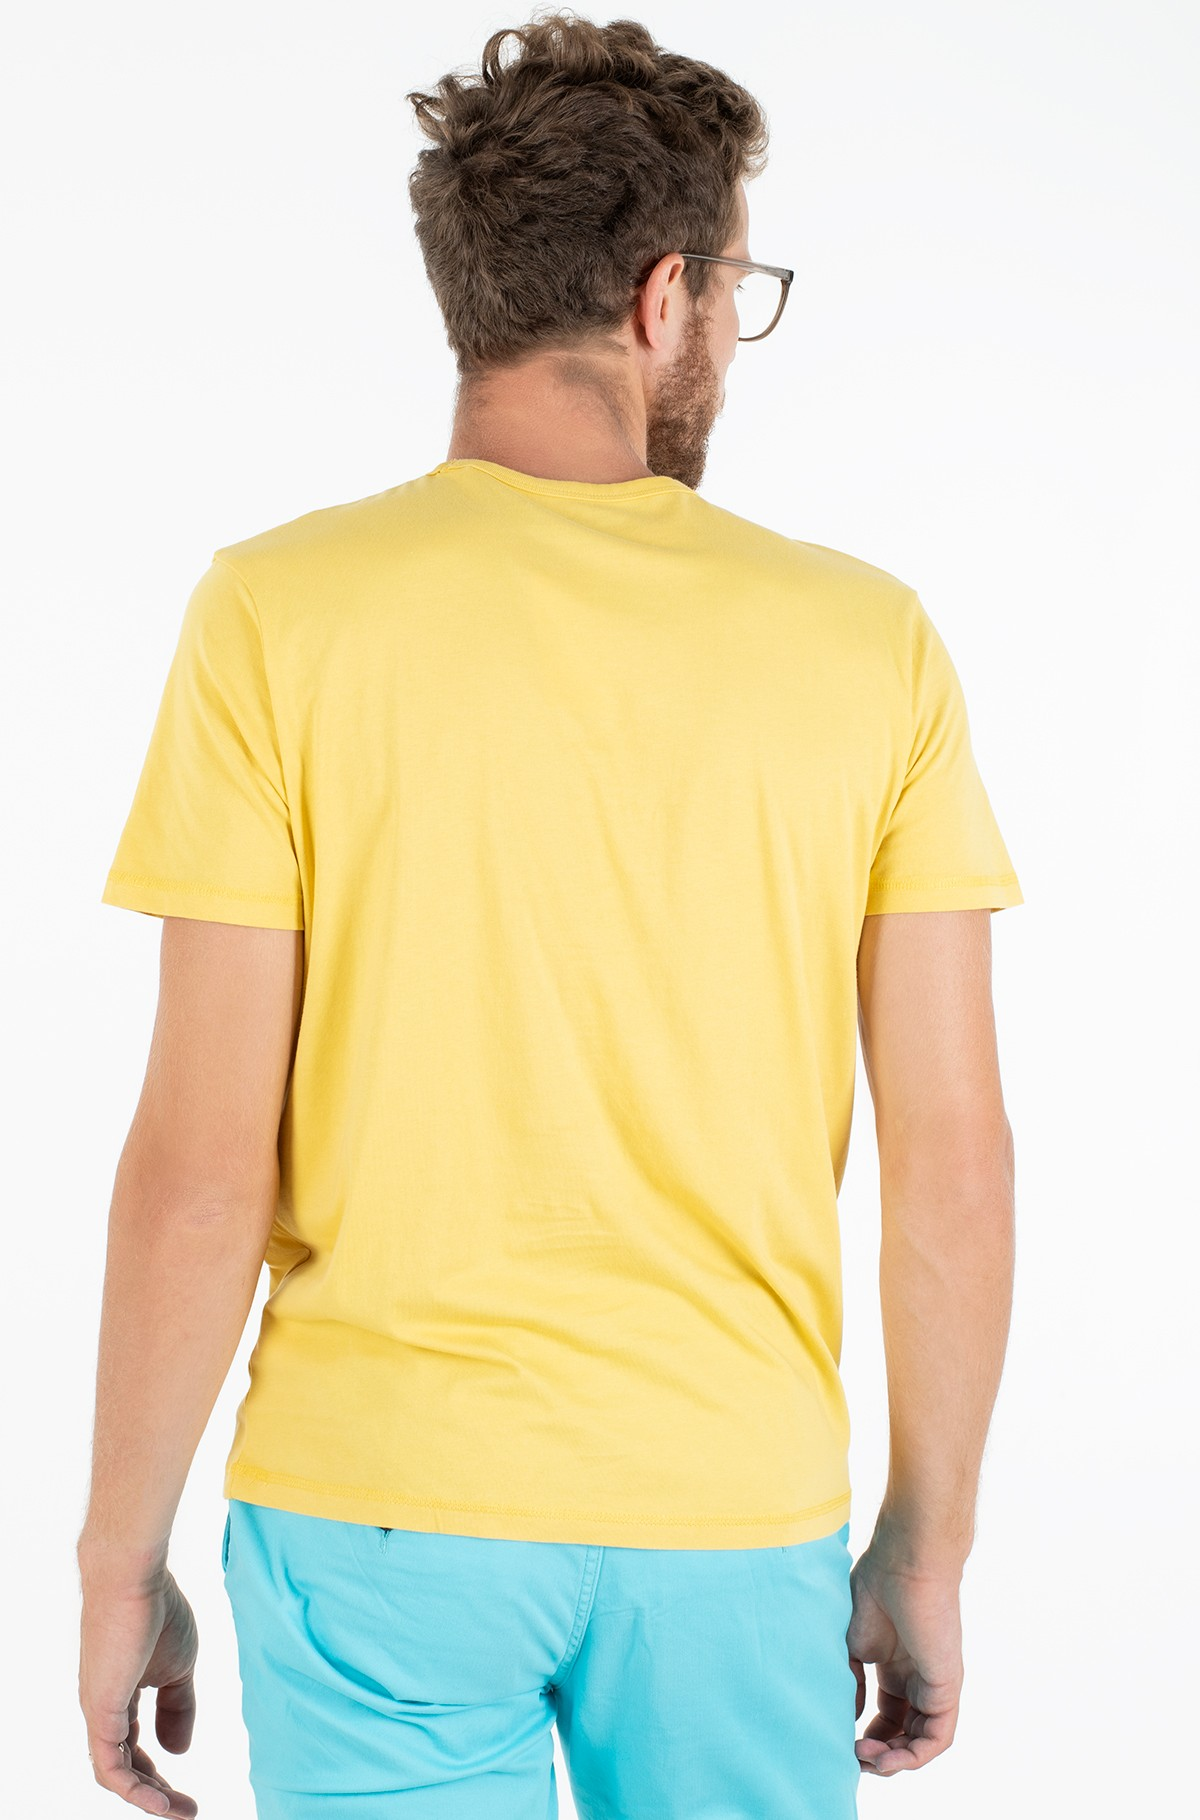 T-shirt SALOMON/PM507272-full-2